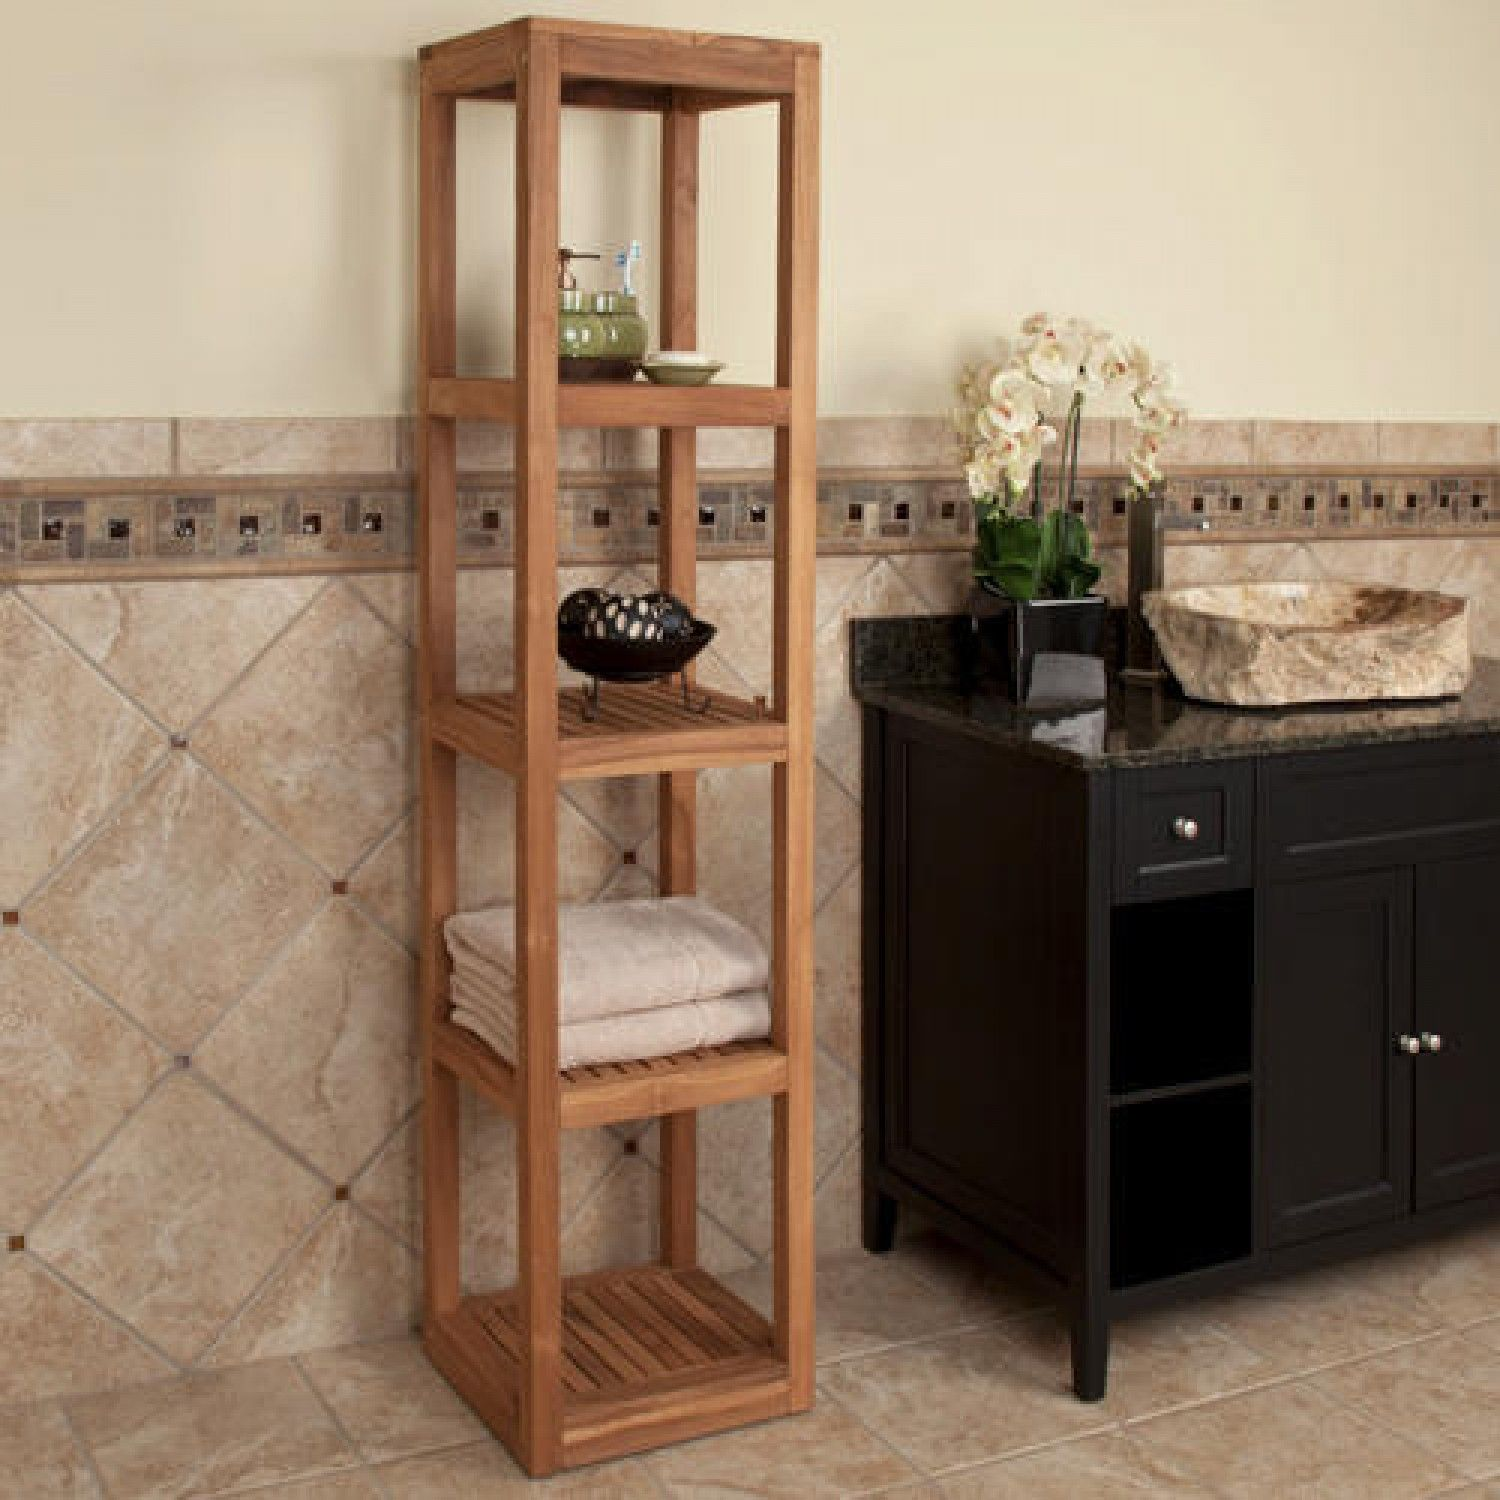 Five Tiered Teak Towel Tower | Teak, Towels and Bathroom inspiration